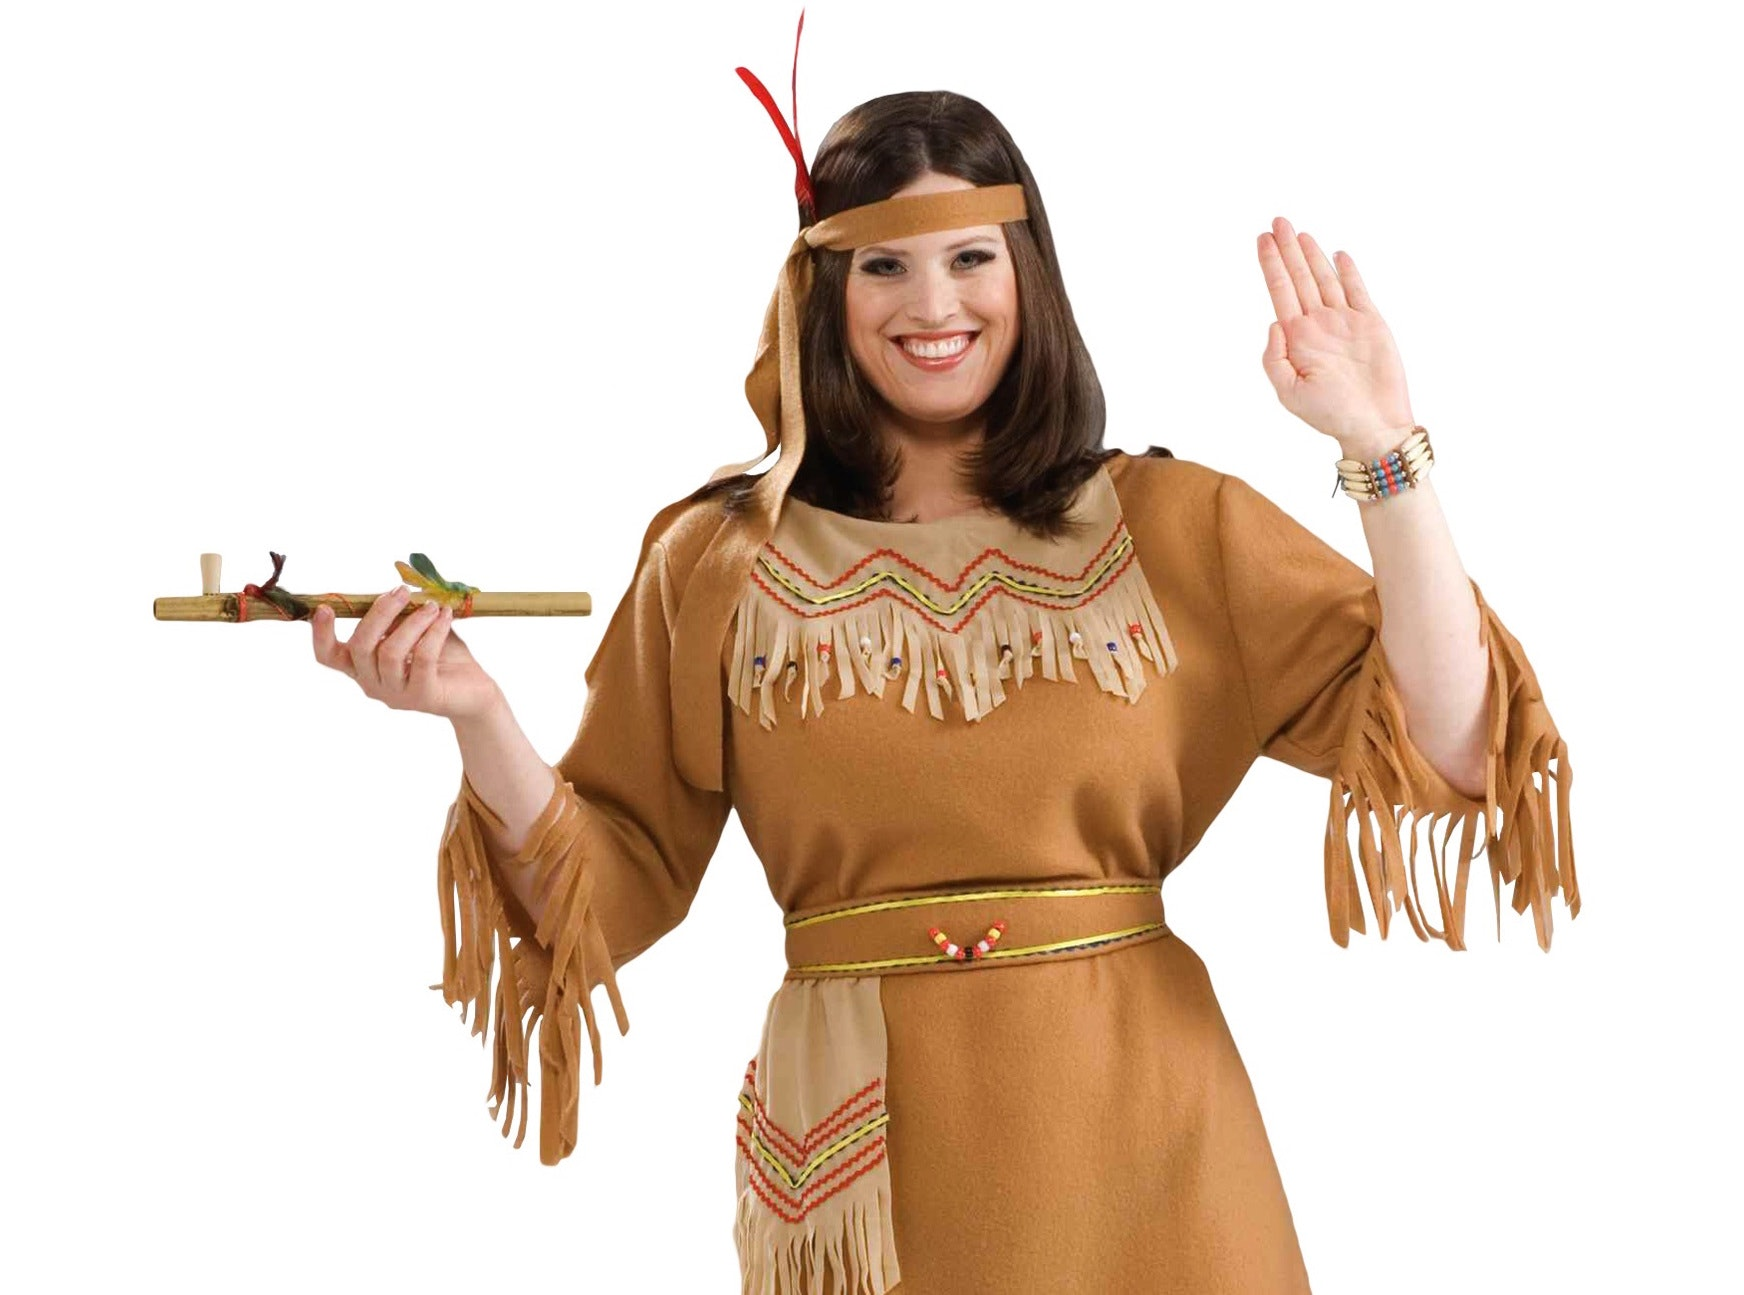 sc 1 st  Bustle & 7 Culturally Appropriative Halloween Costumes To Avoid This Year